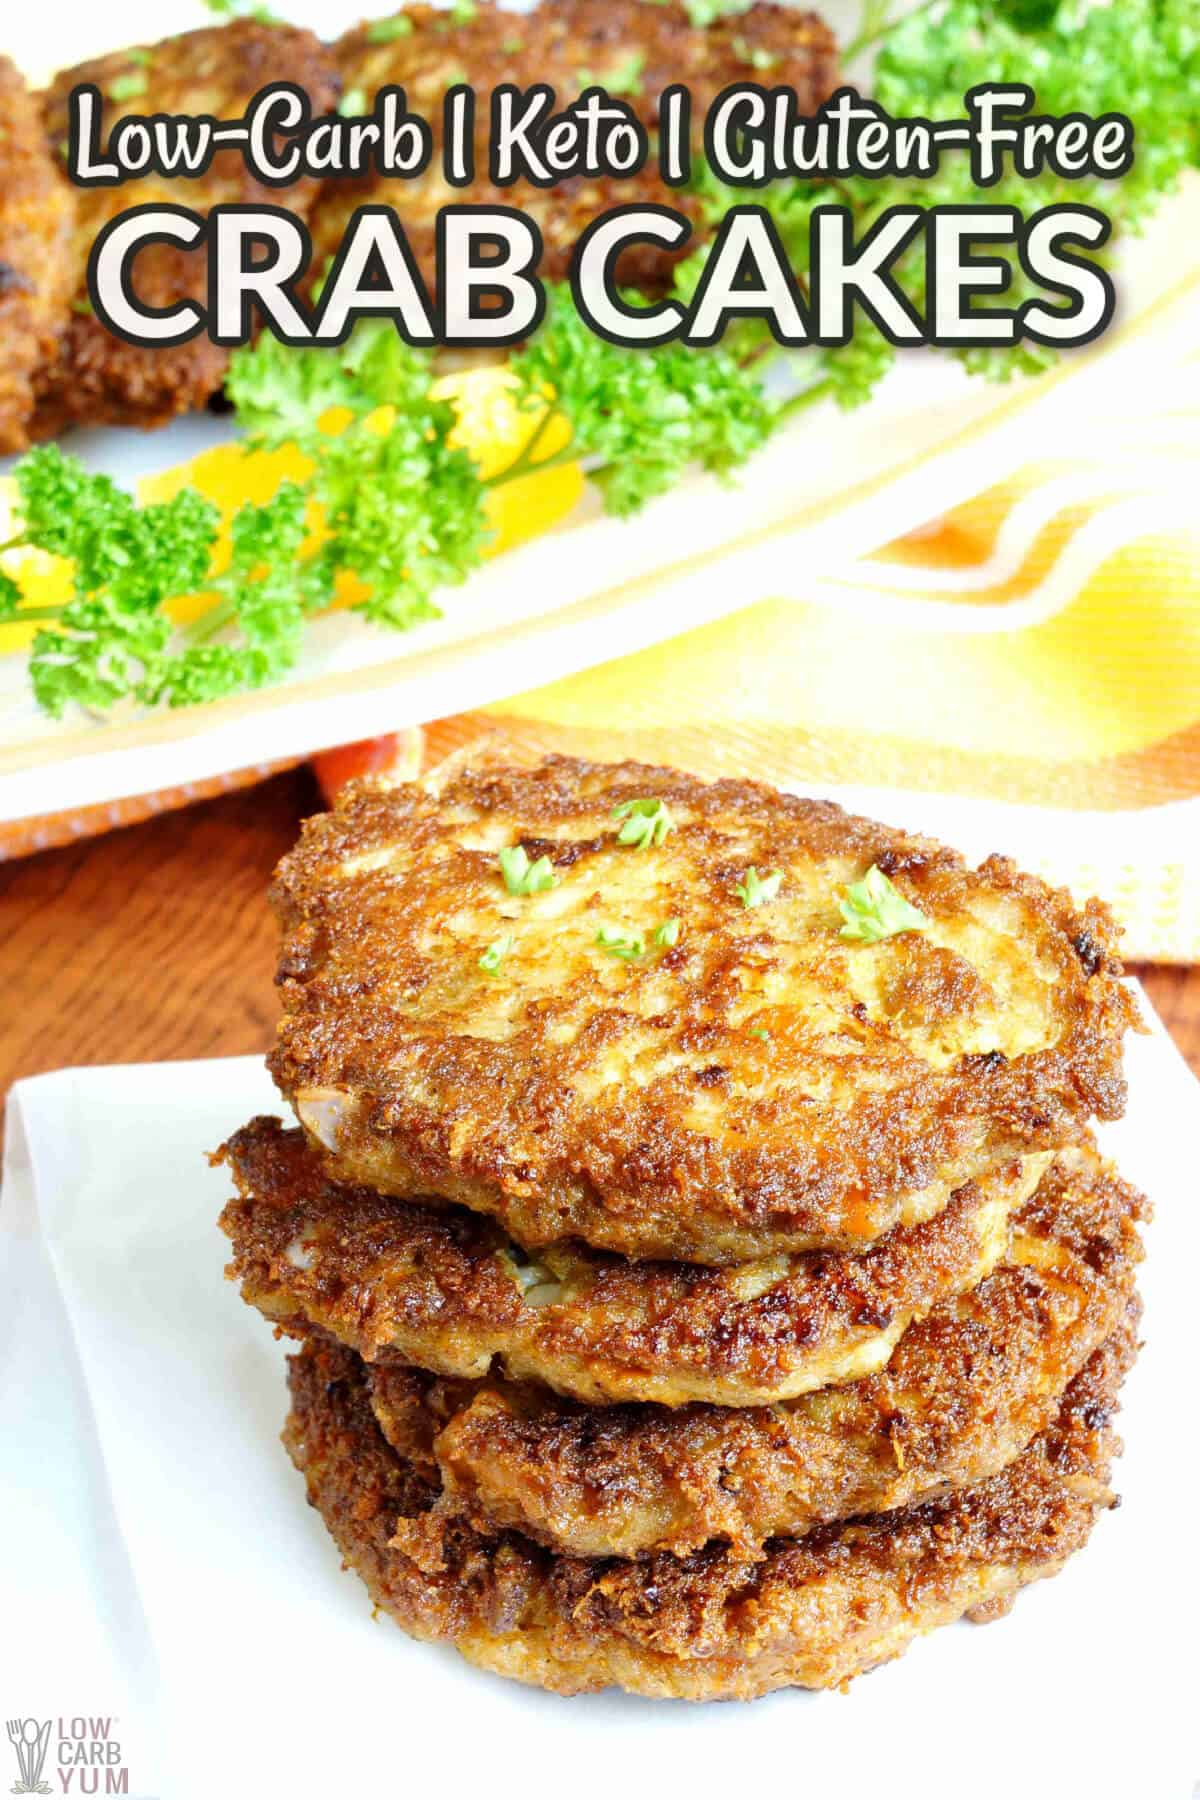 keto crab cakes cover image